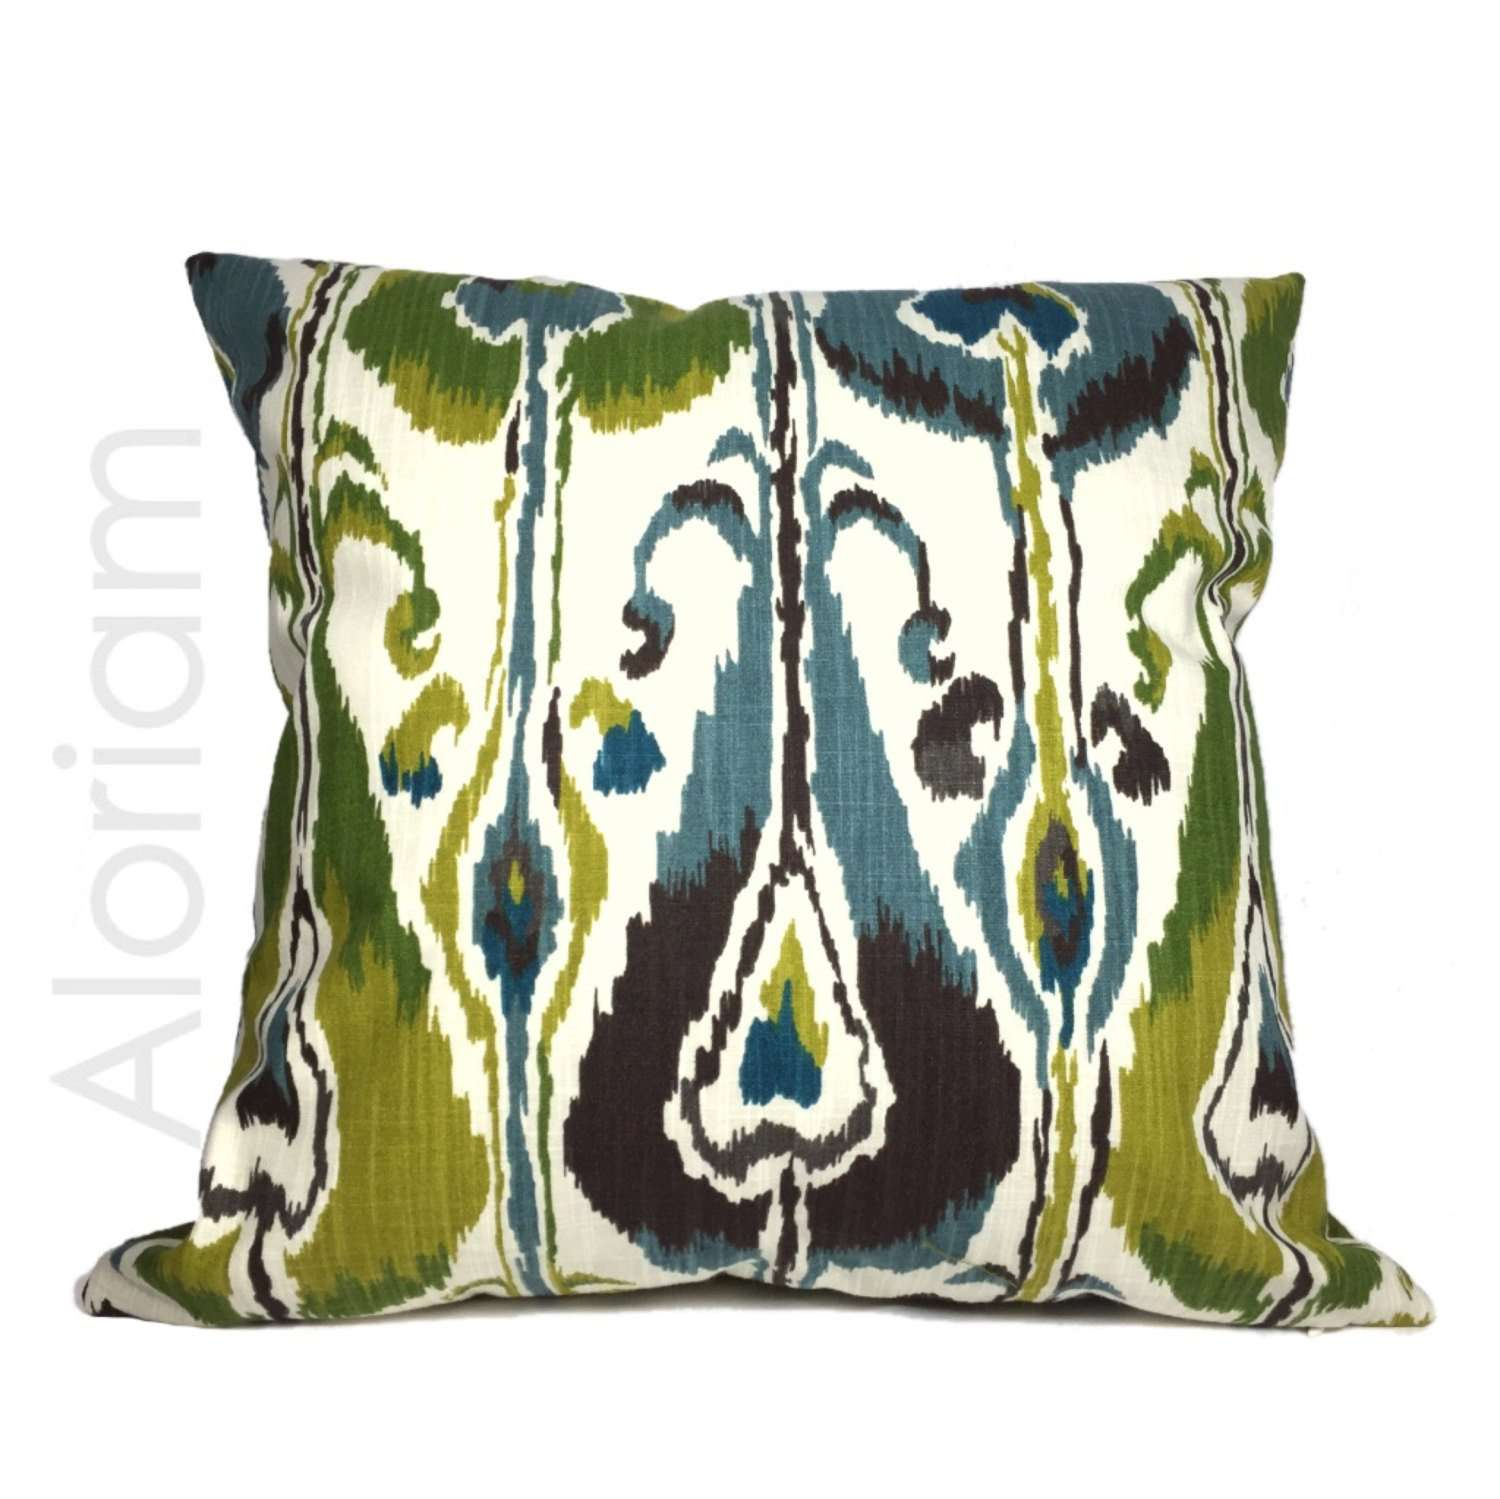 Robert Allen Blue Green Ivory Ikat Bands Pillow Cushion Cover